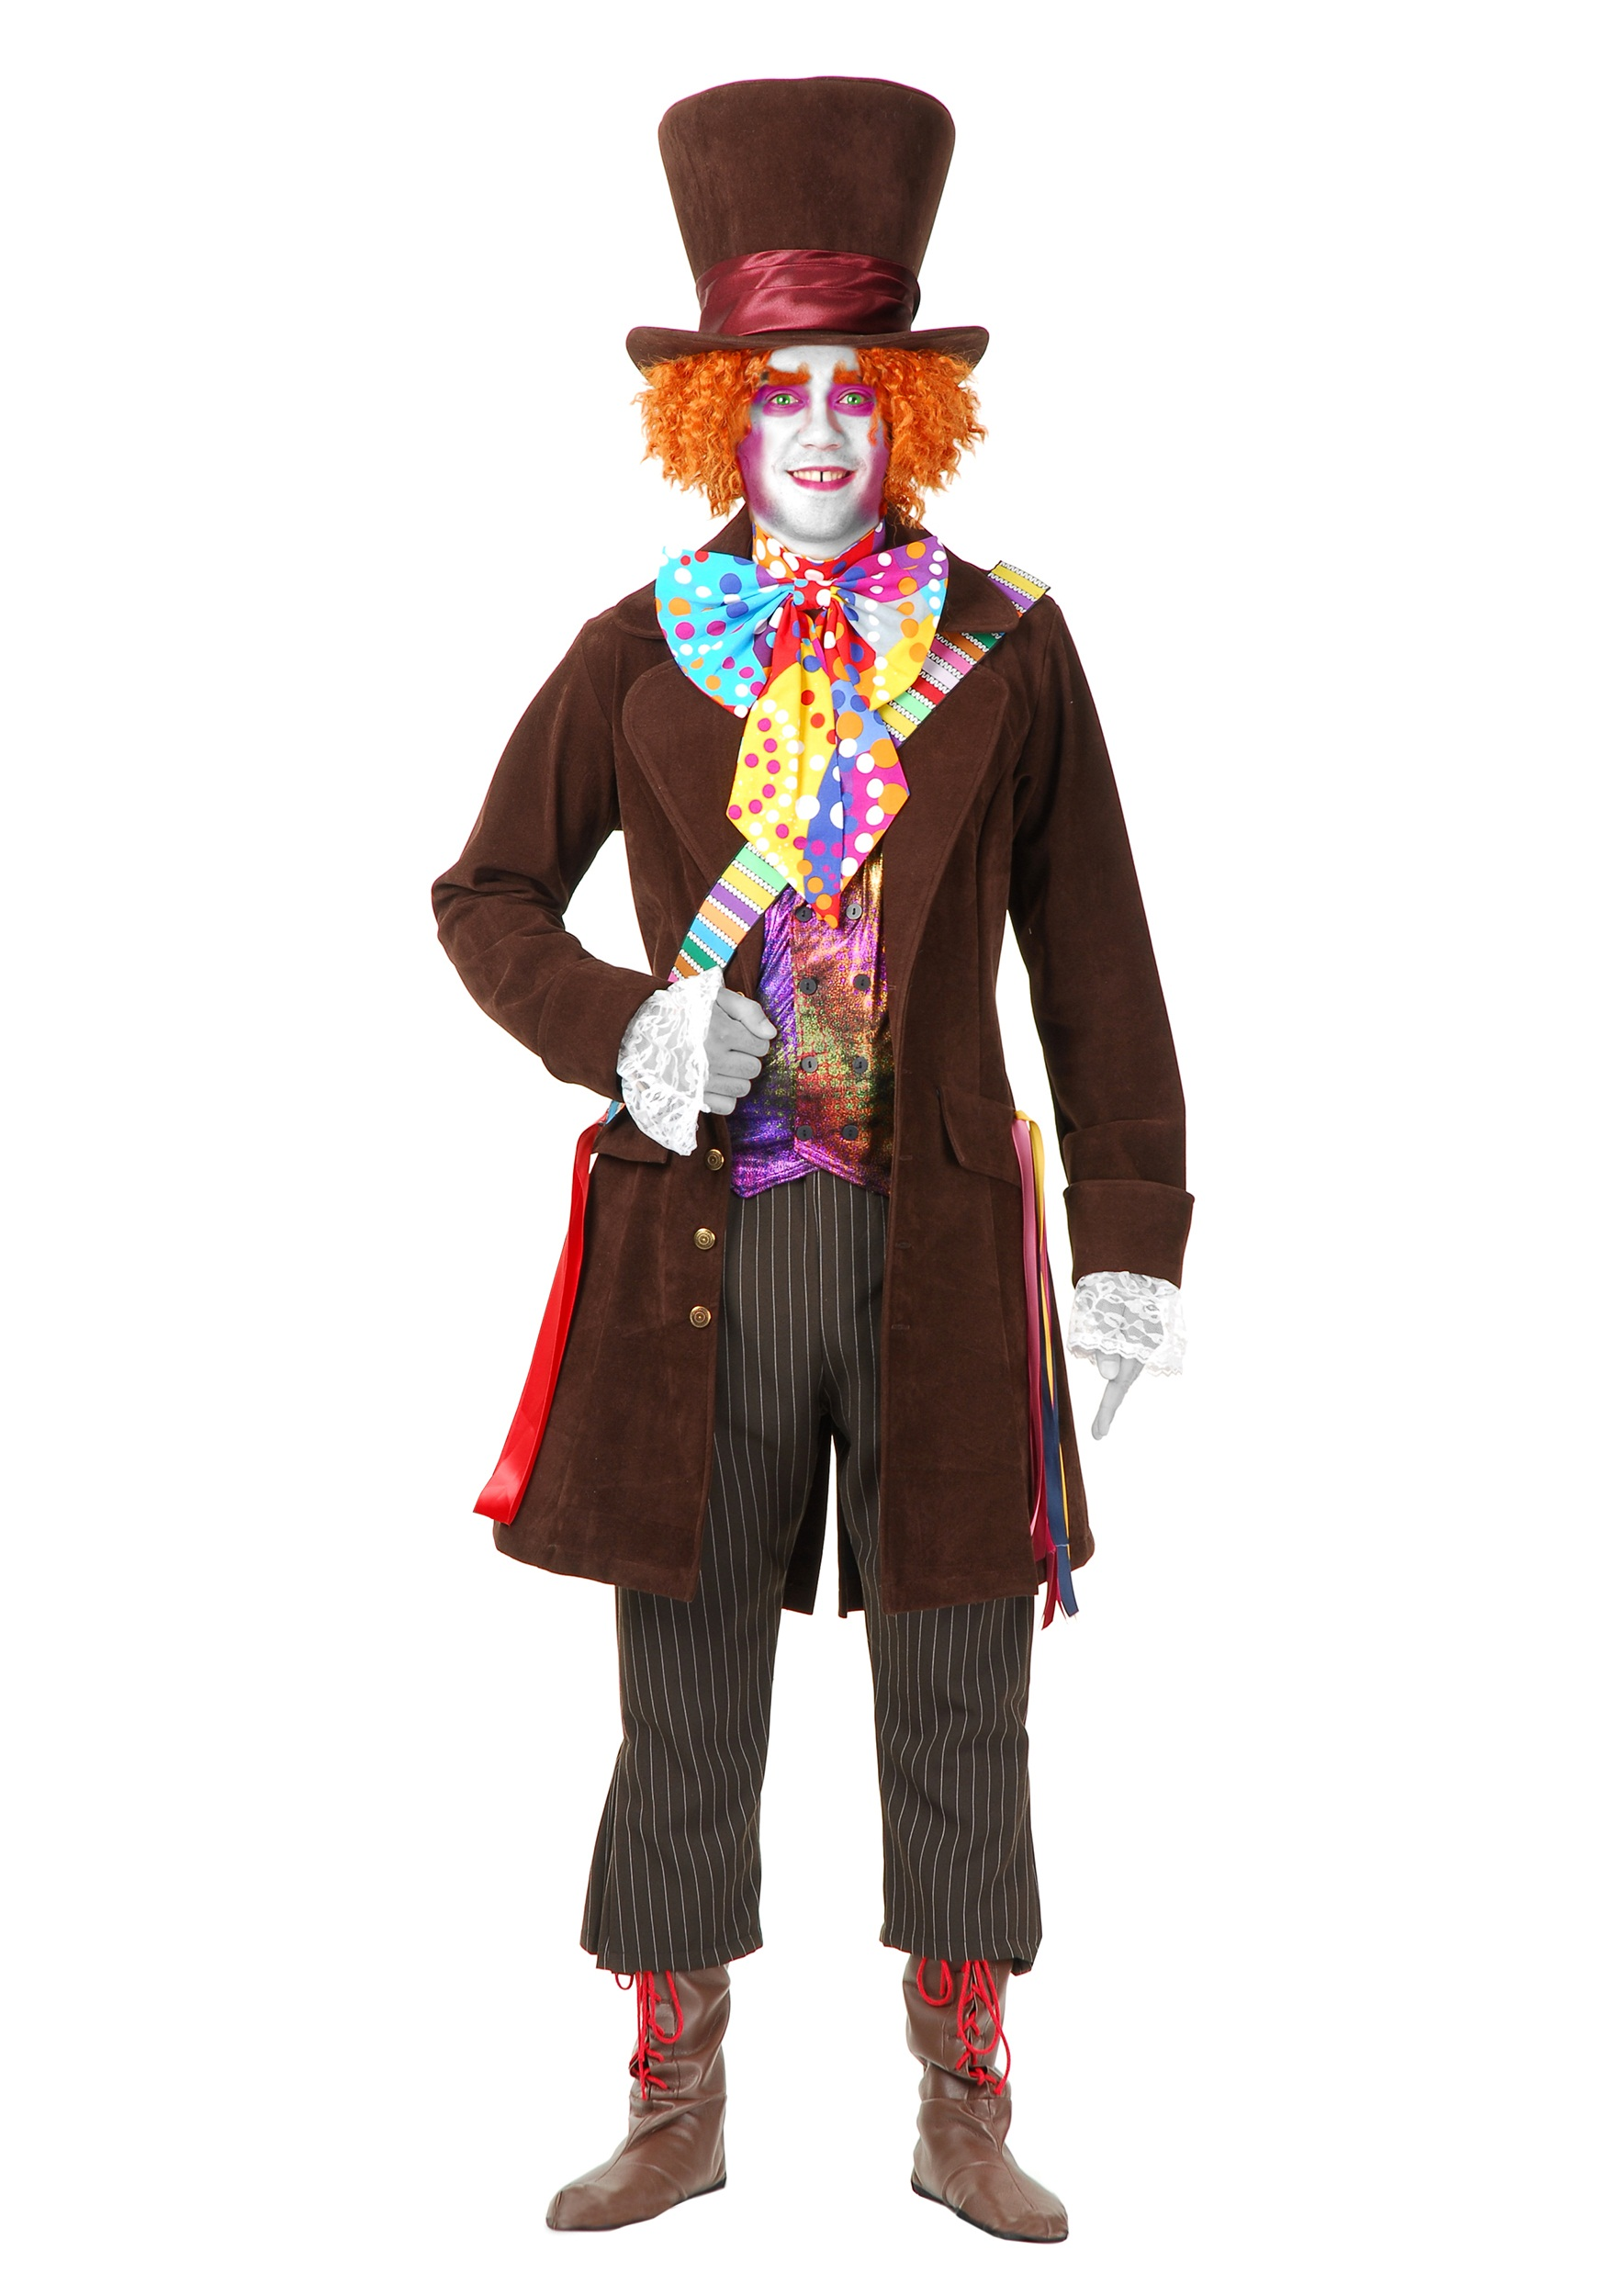 Plus Size Deluxe Mad Hatter Costume  sc 1 st  Halloween Costume Ideas & Plus Size Deluxe Mad Hatter Costume - Alice in Wonderland Costume